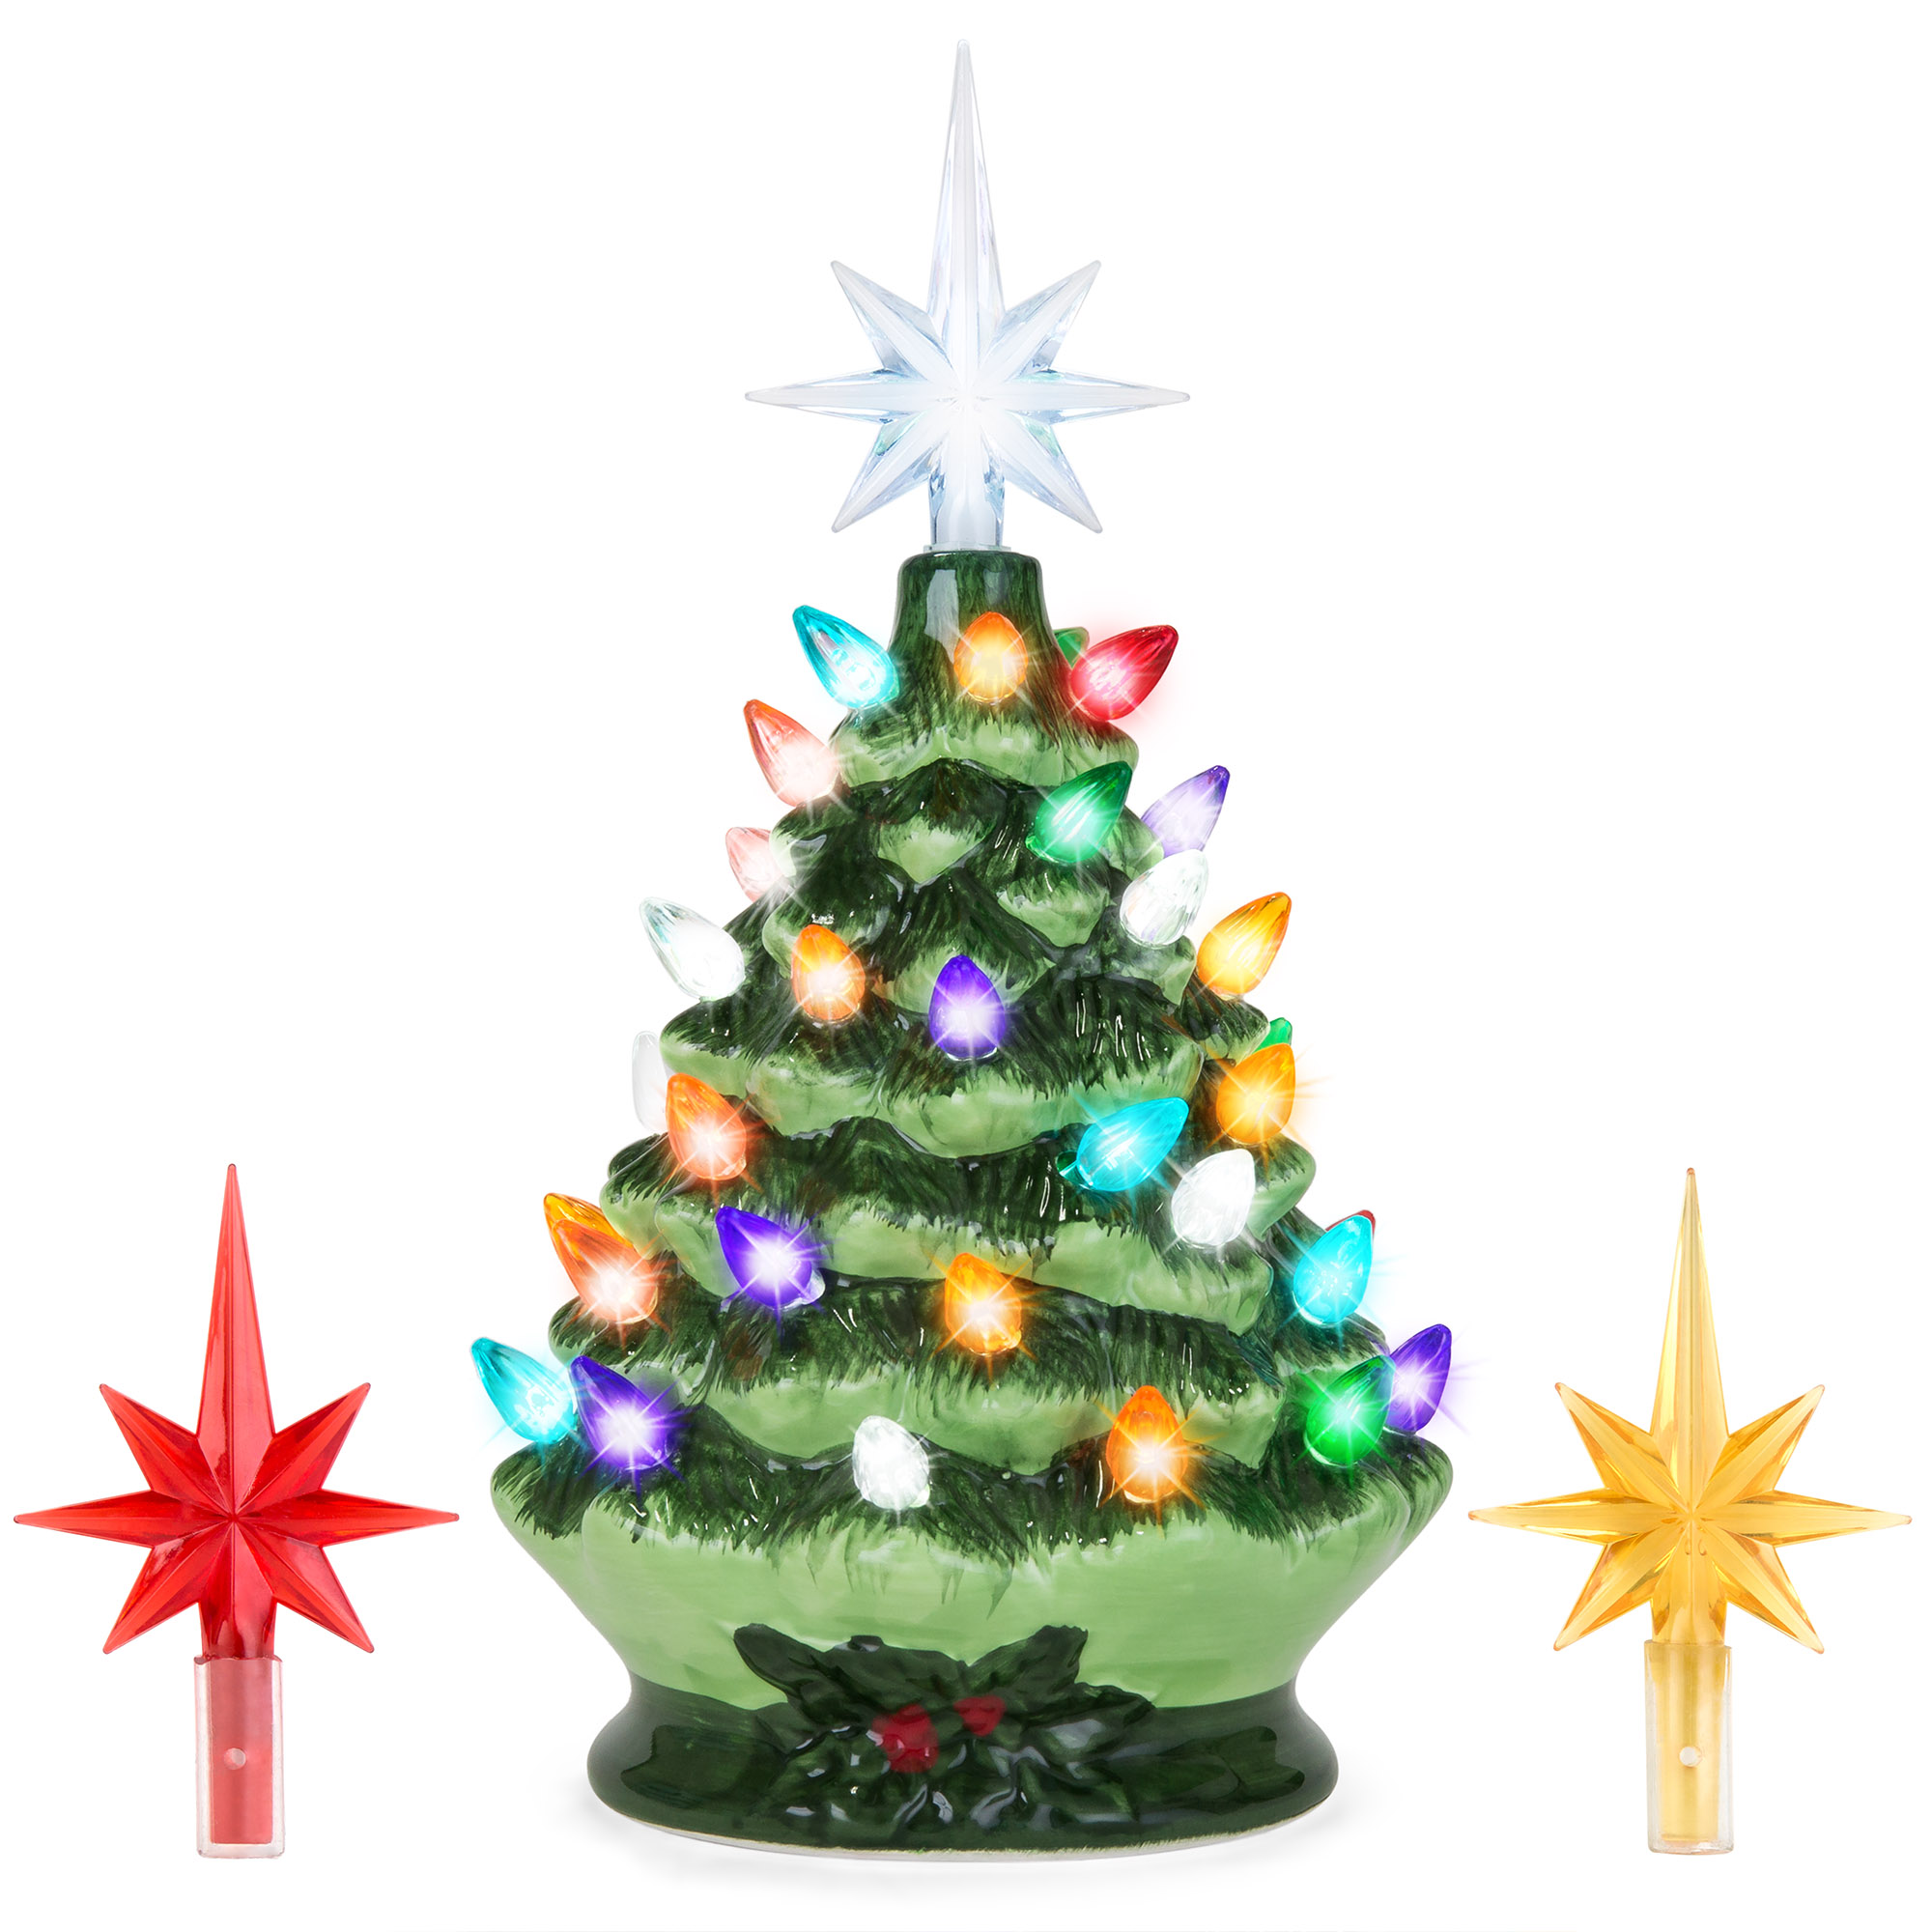 Best Choice Products 9.5in Pre-Lit Hand-Painted Ceramic Tabletop Artificial Christmas Tree Festive Holiday Decor w/ Multicolored Lights, 3 Star Toppers - Green